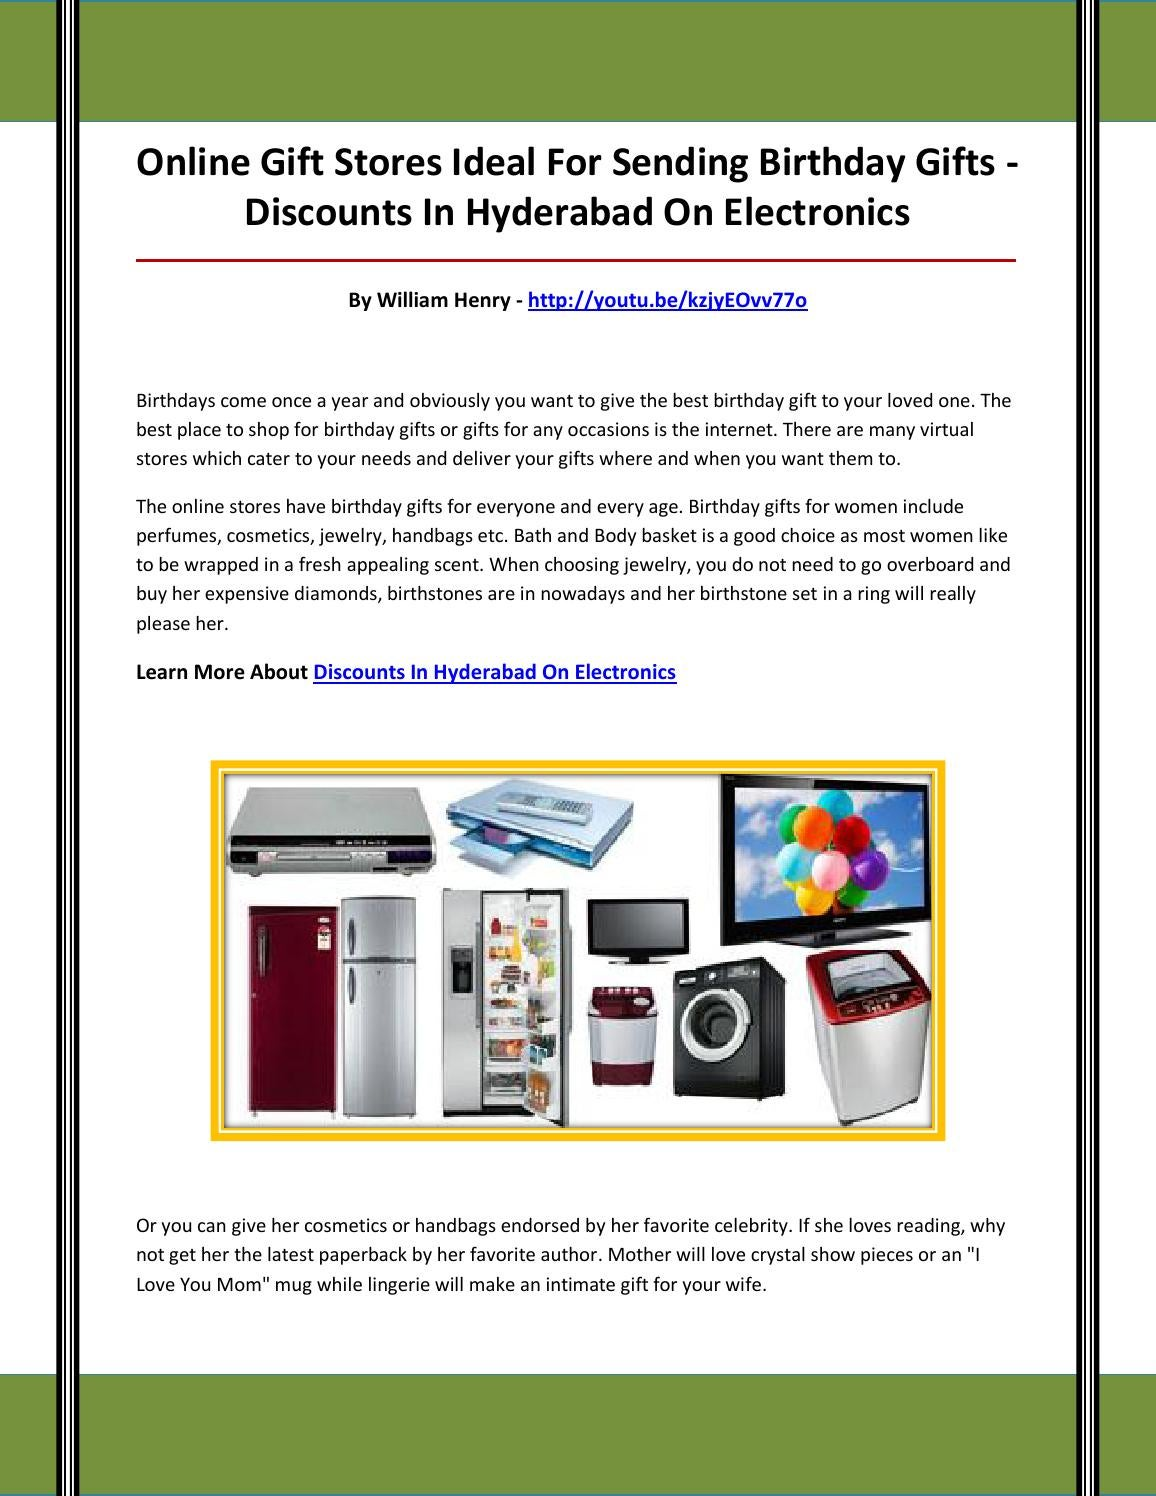 Discounts In Hyderabad On Electronics